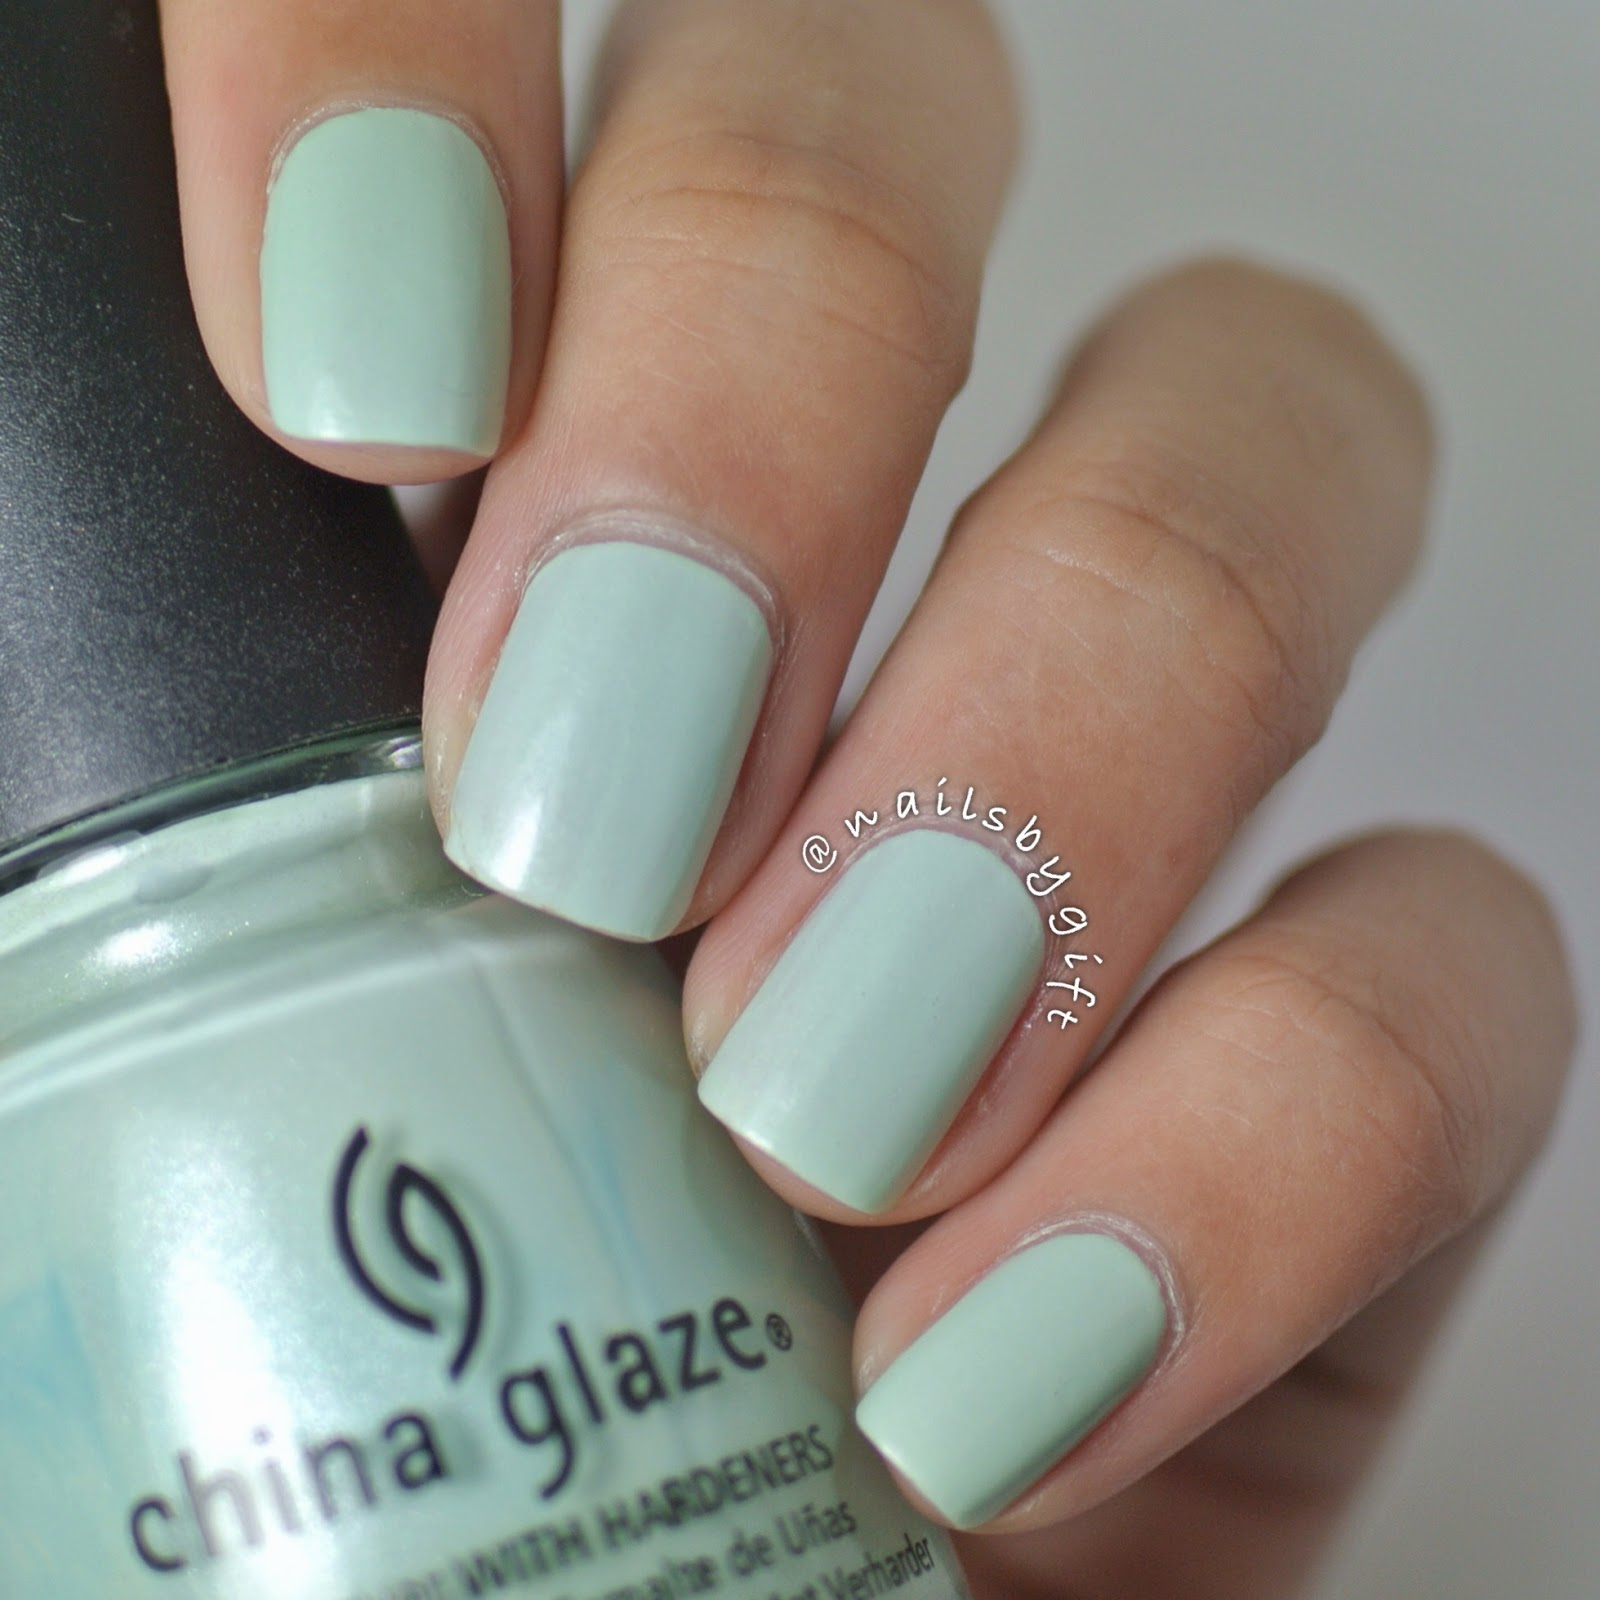 China+Glaze+Keep+Calm+and+Paint+On